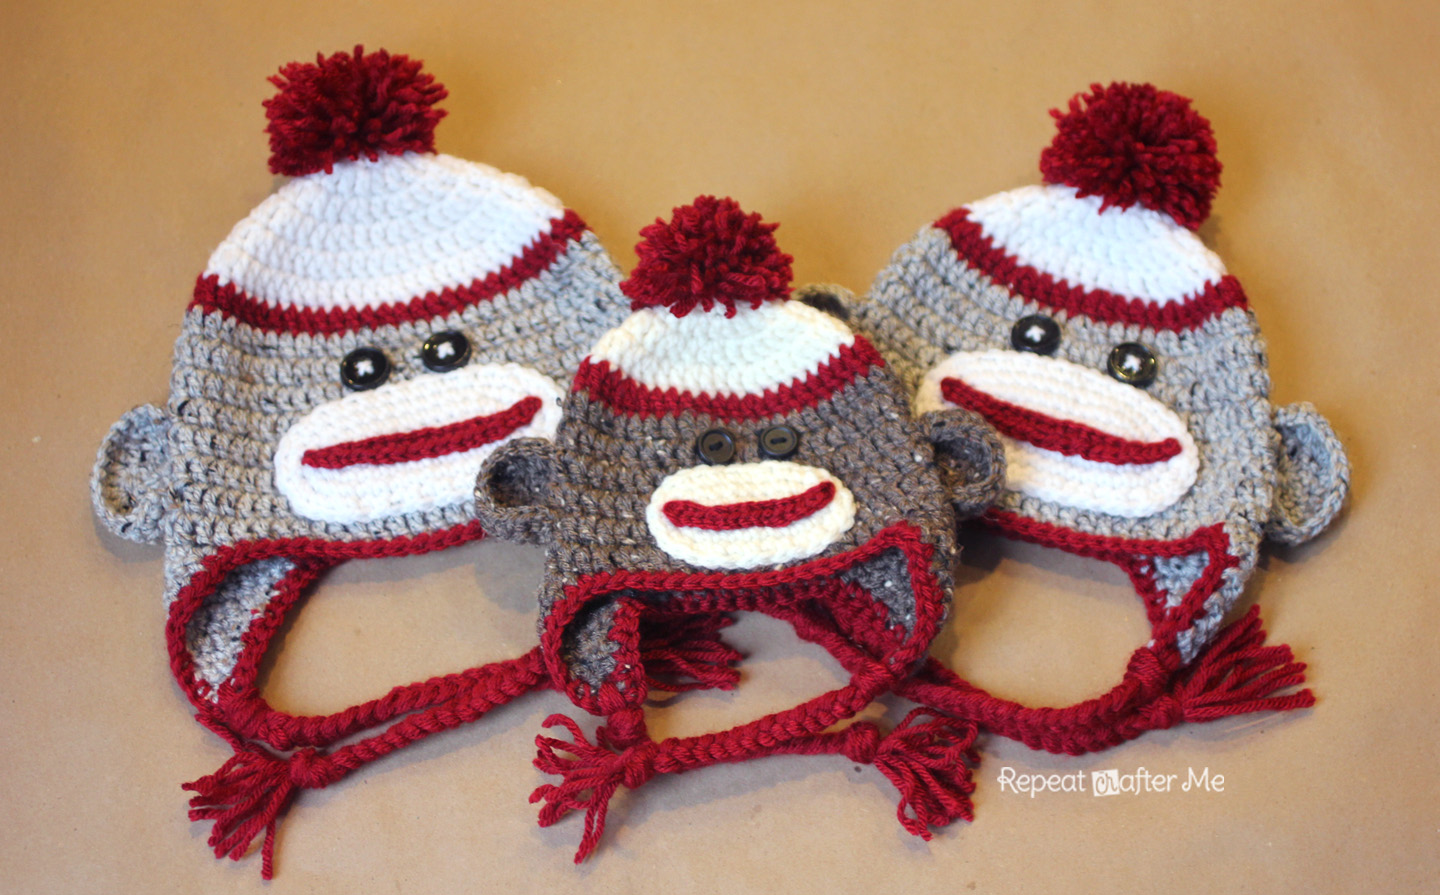 Free Crochet Pattern Sock Monkey Slippers : Crochet Sock Monkey Hat Pattern - Repeat Crafter Me